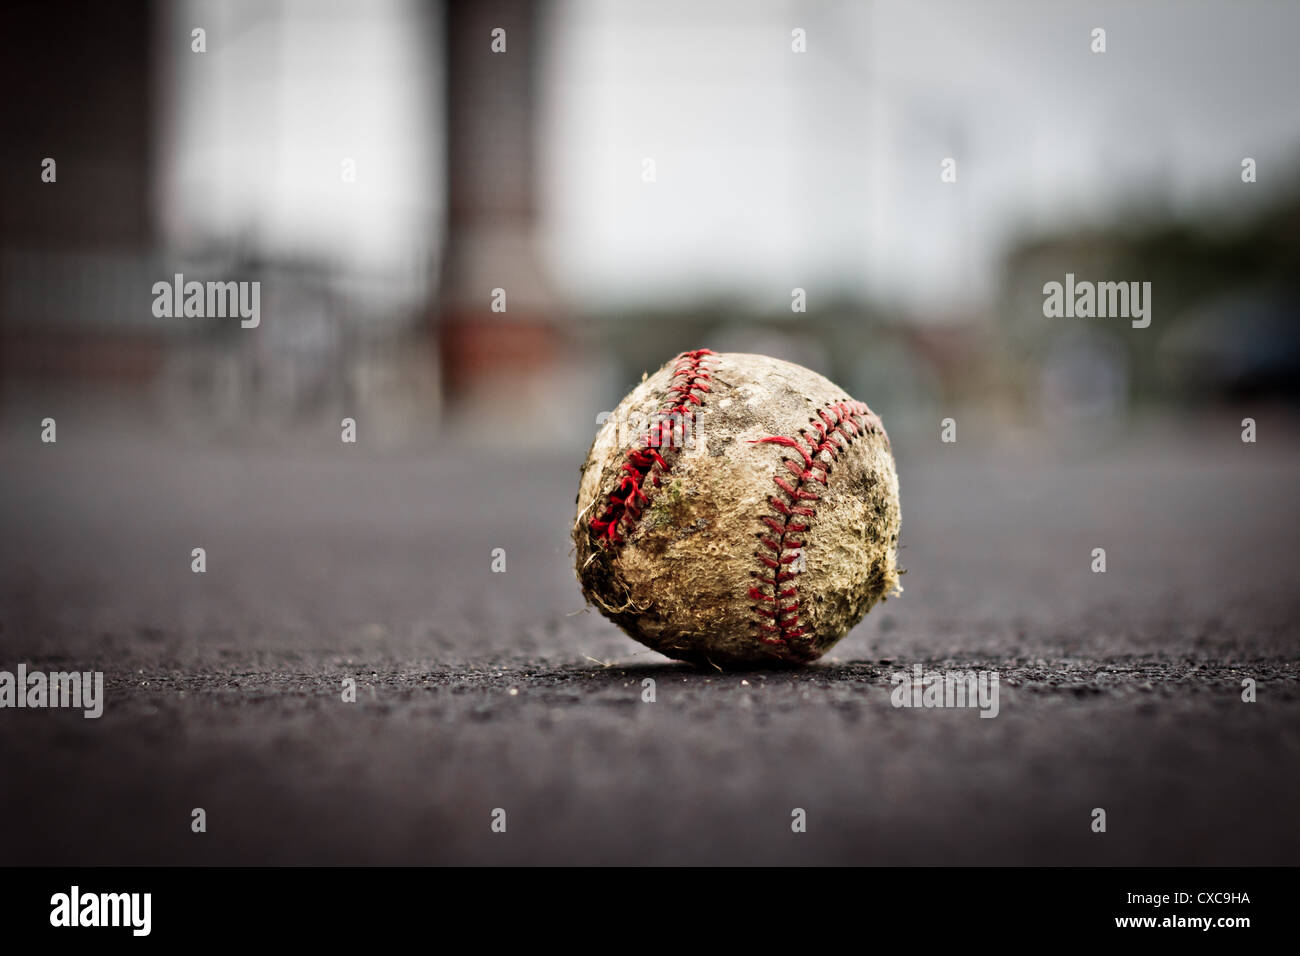 Grungy well worn old baseball on ground with very shallow depth of field - Stock Image